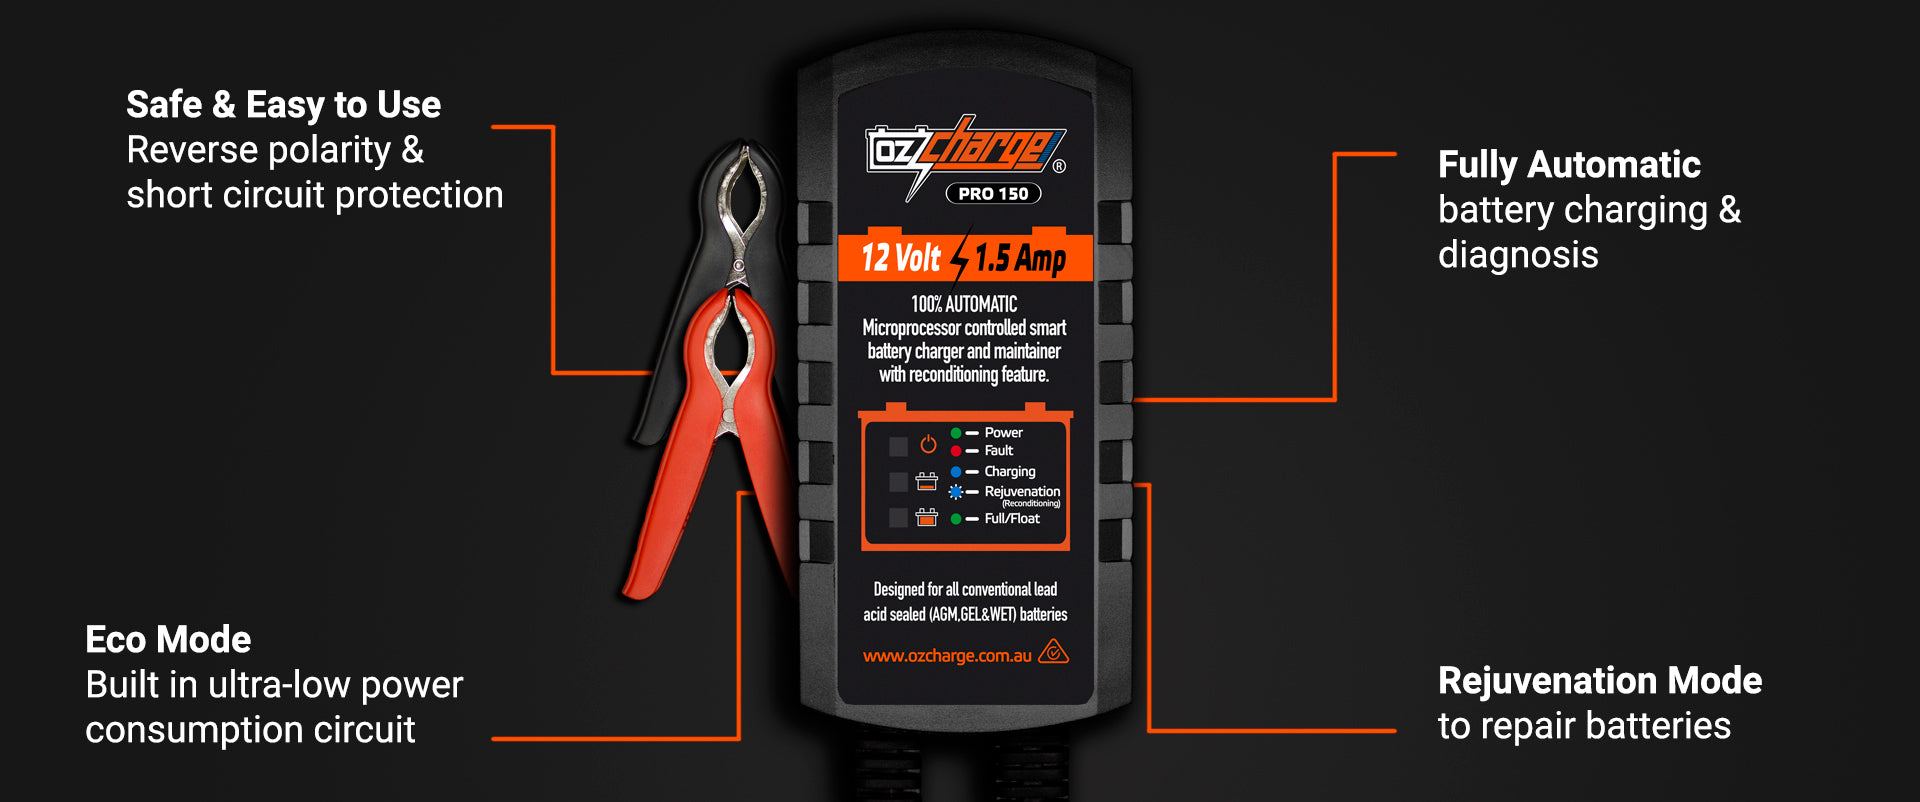 OzCharge Pro150 1.5A Battery Charger and maintainer